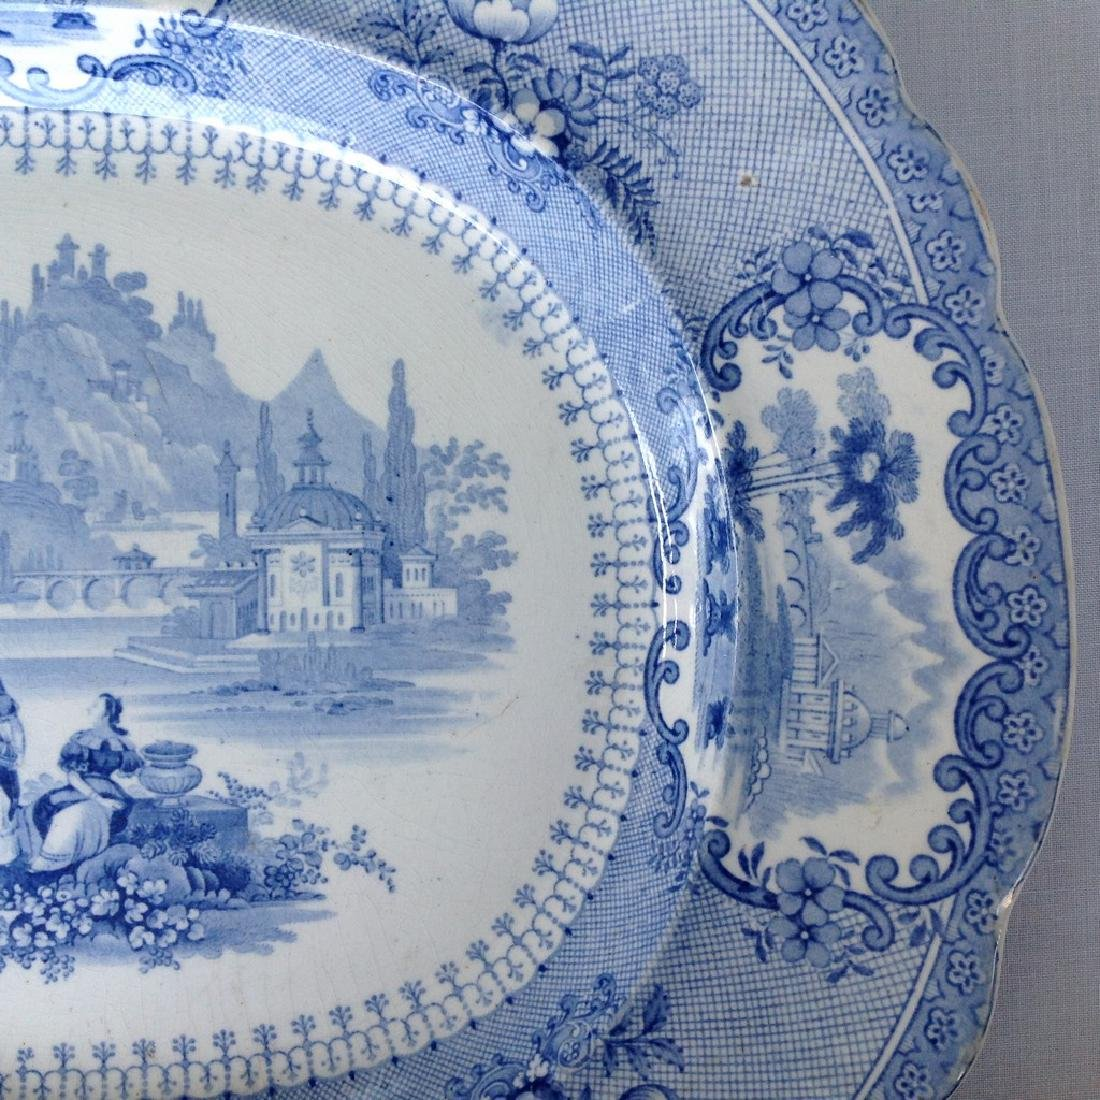 Dish with decorative romantic performance - 5